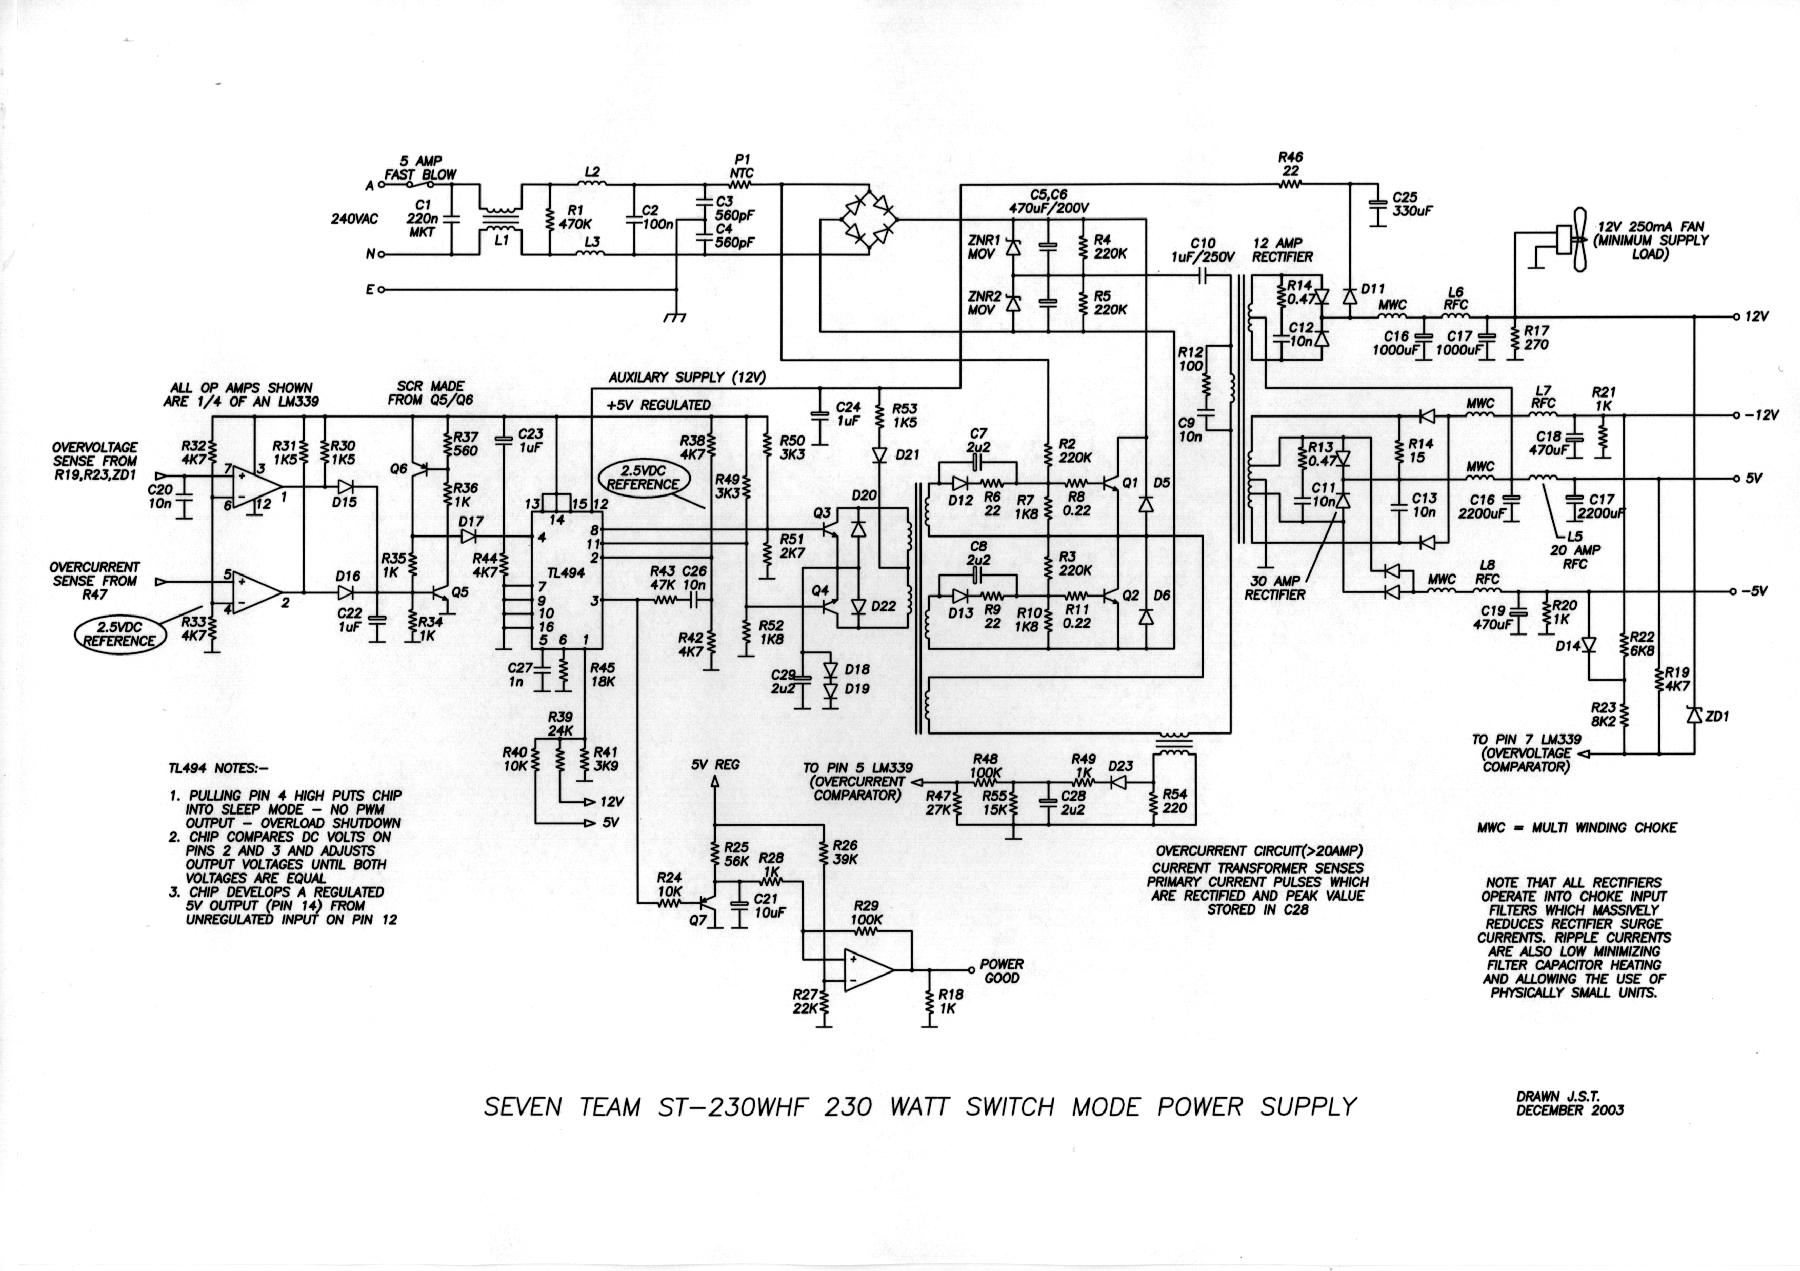 Groovy 5 Pc Power Supply Circuit For You Eleccircuit Com Wiring Cloud Intelaidewilluminateatxorg